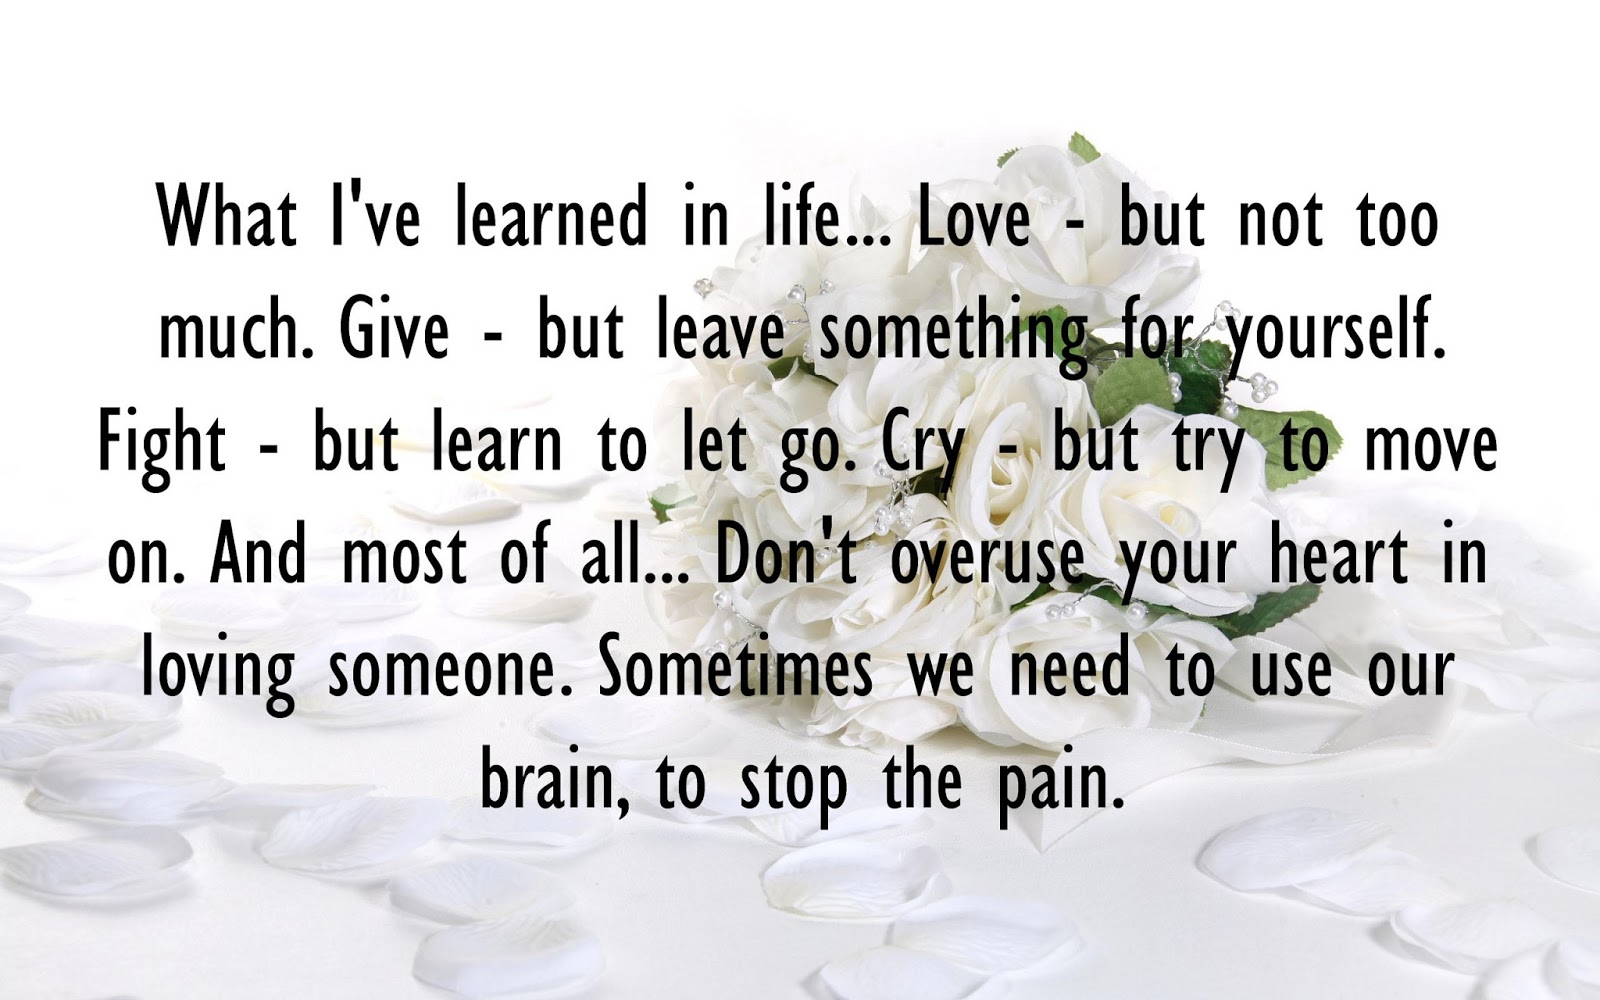 Not every love needs to be let go